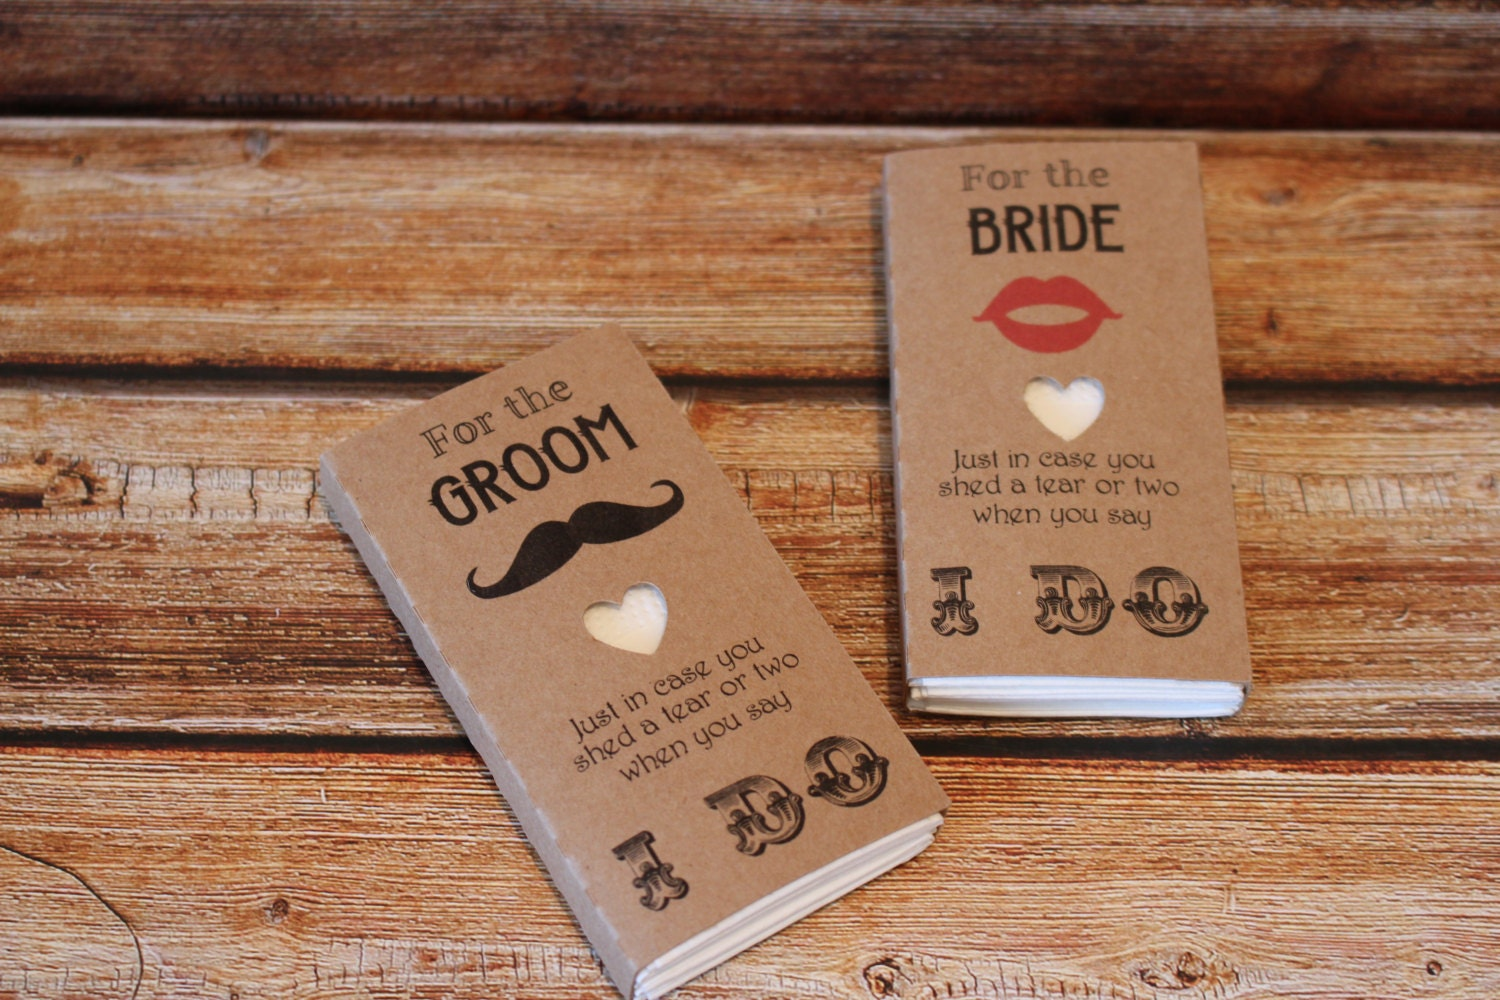 Bride And Groom Wedding Gifts: Wedding Favour Tissues For The Bride And Groom Gift